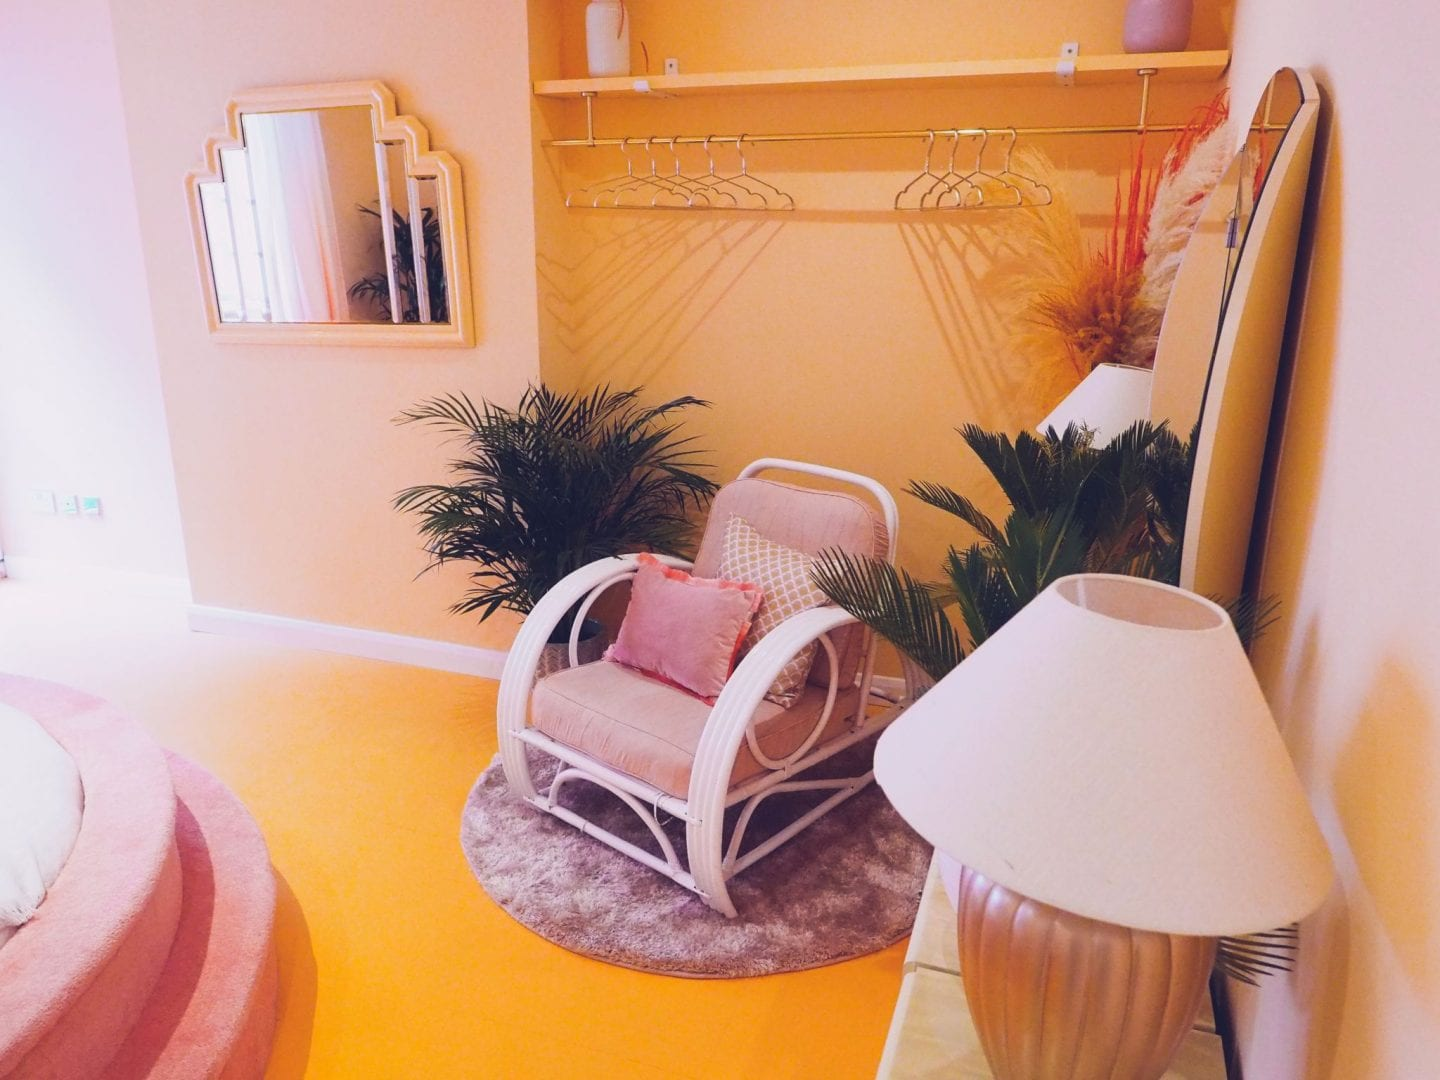 Margate suites hotel airbnb holiday cottage seashell bedroom bed wicker chair